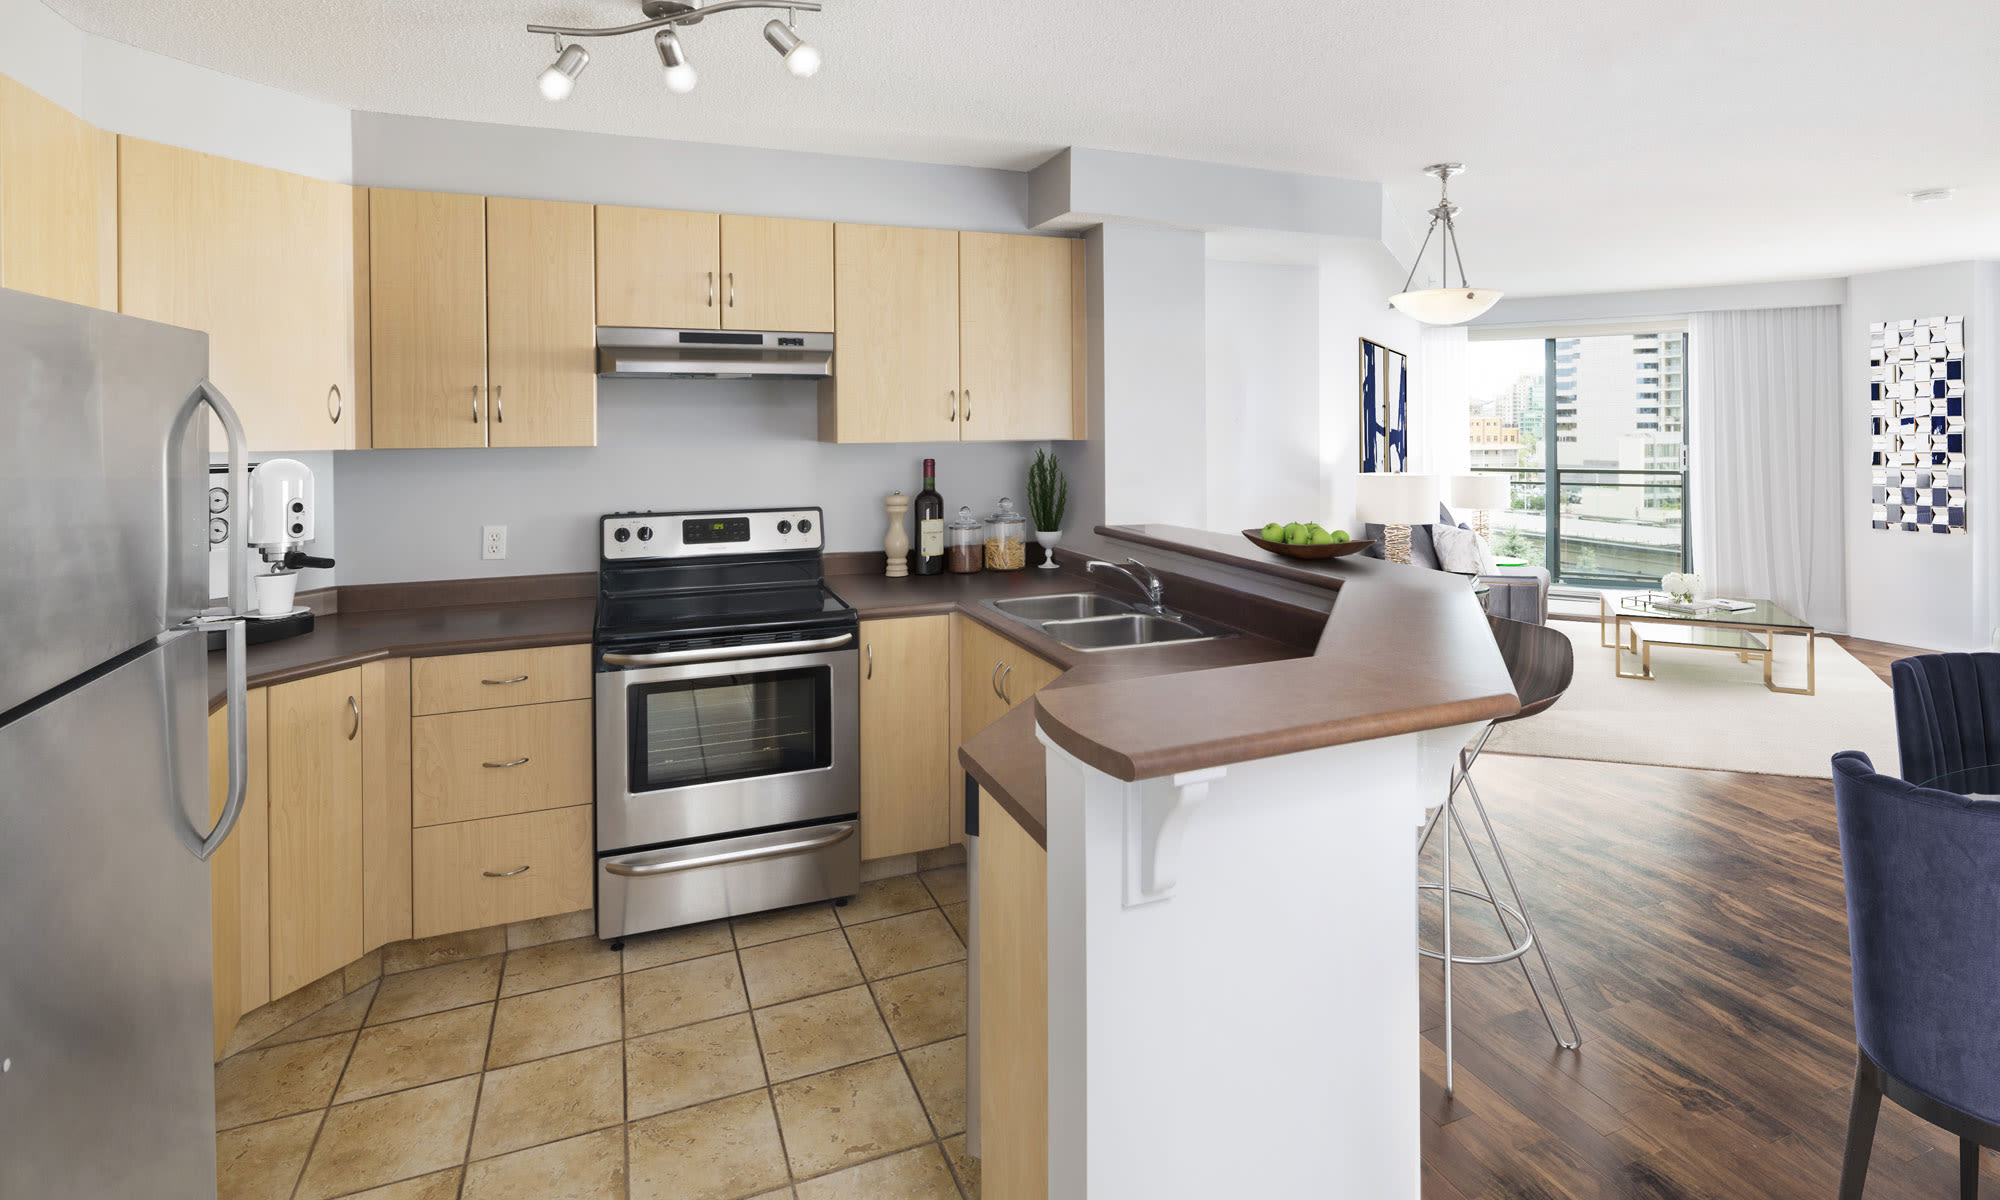 Discovery Pointe offers a beautiful kitchen in Calgary, Alberta